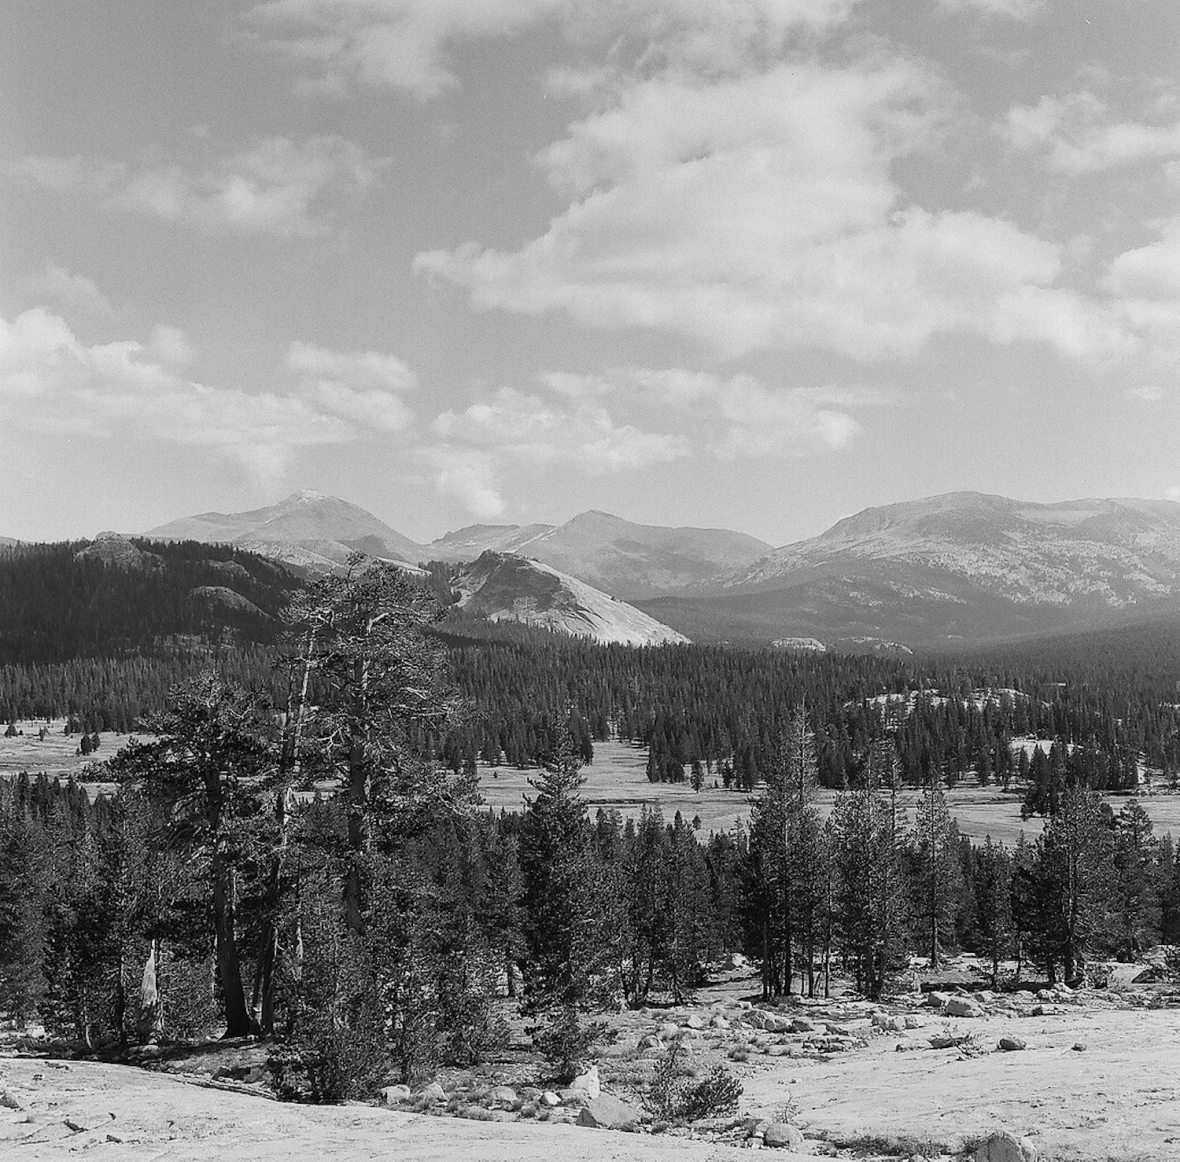 Medium format 120 mm monochrome film photography Tuolumne Meadows and Granite peaks Yosemite National Park